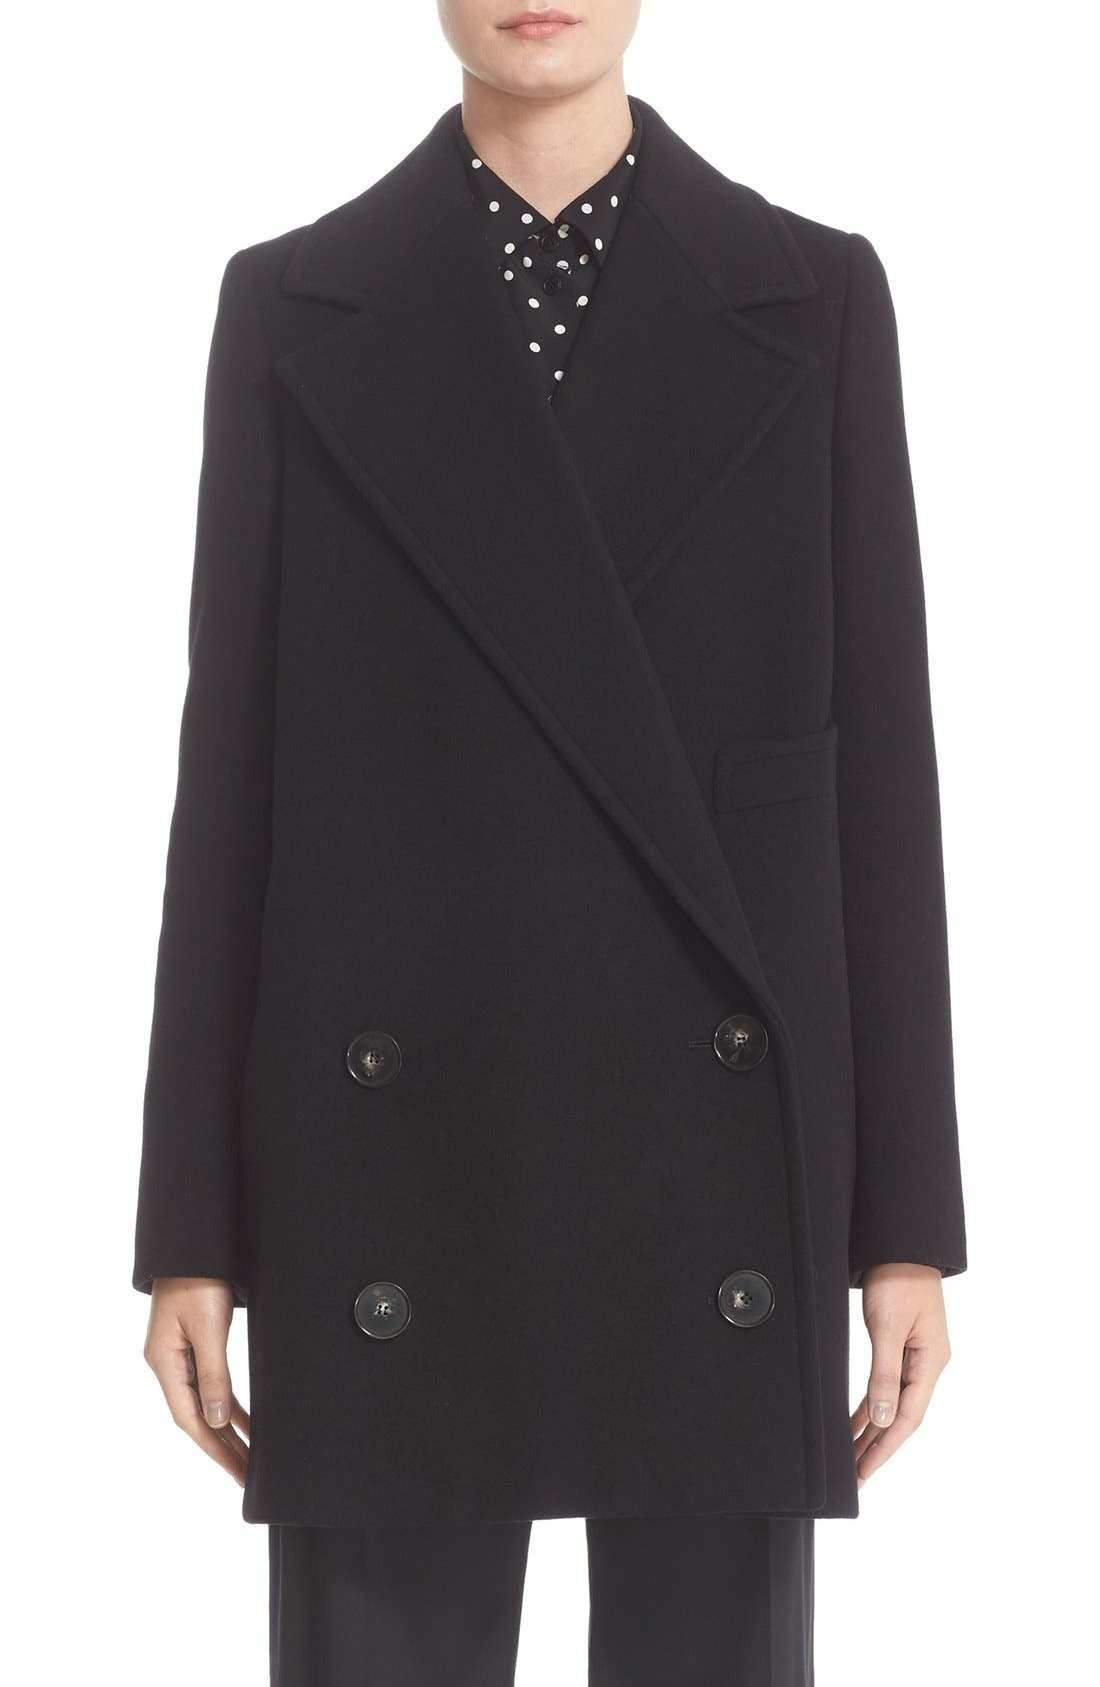 'Edith' Double Breasted Wool Blend Coat,                         Main,                         color, 001